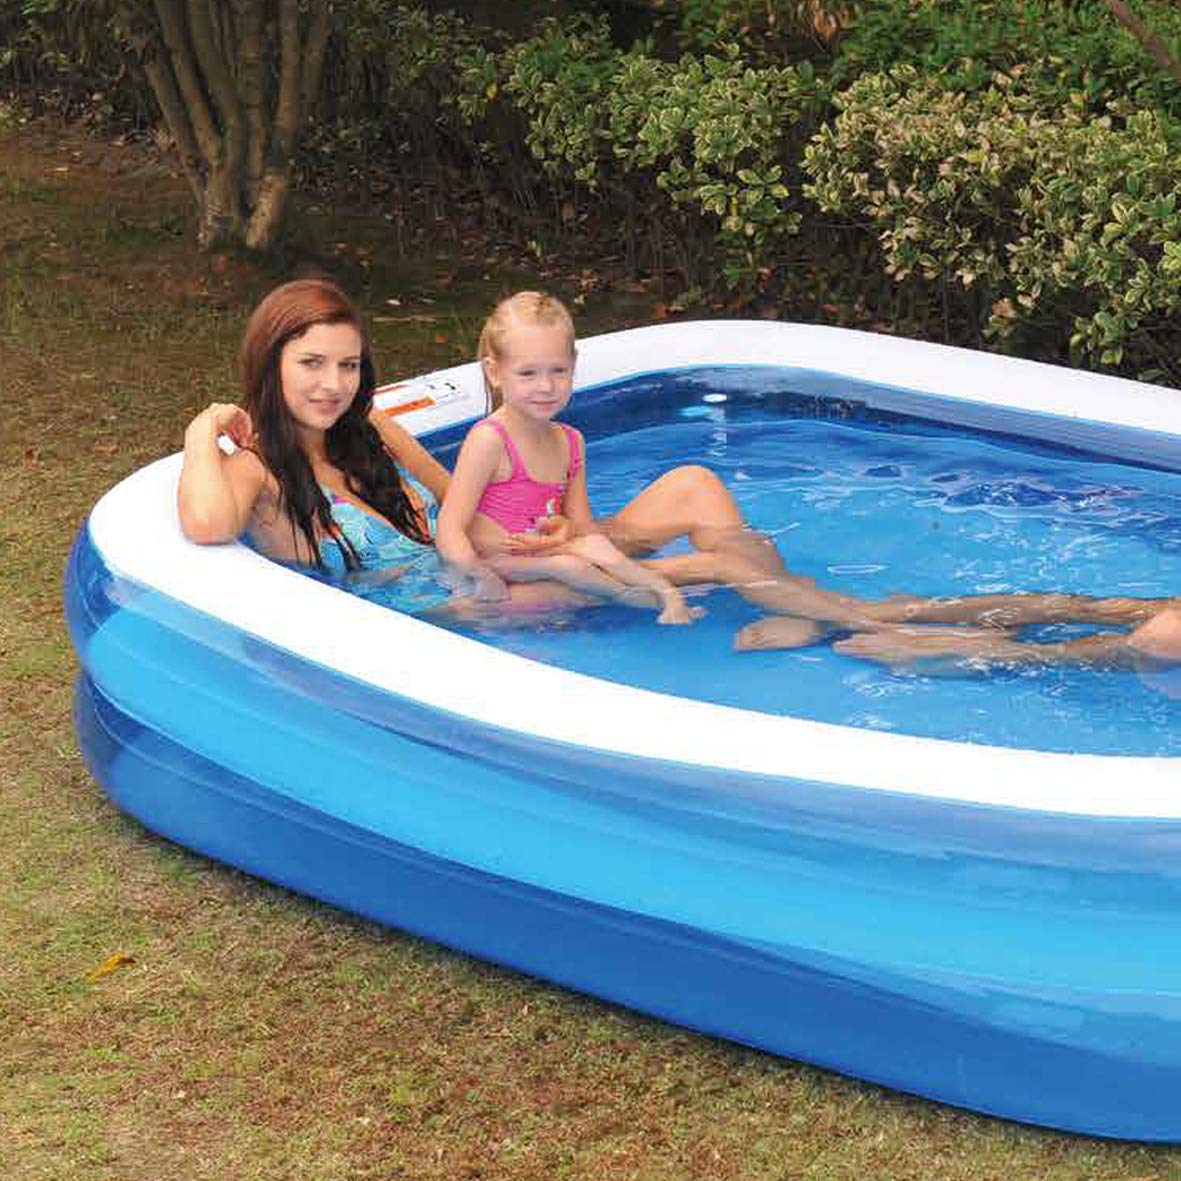 GardenKraft - Piscina Hinchable Rectangular (2m): Gardenkraft 2m Garden Inflatable Rectangular Swimming Pool (Medium): Amazon.es: Juguetes y juegos